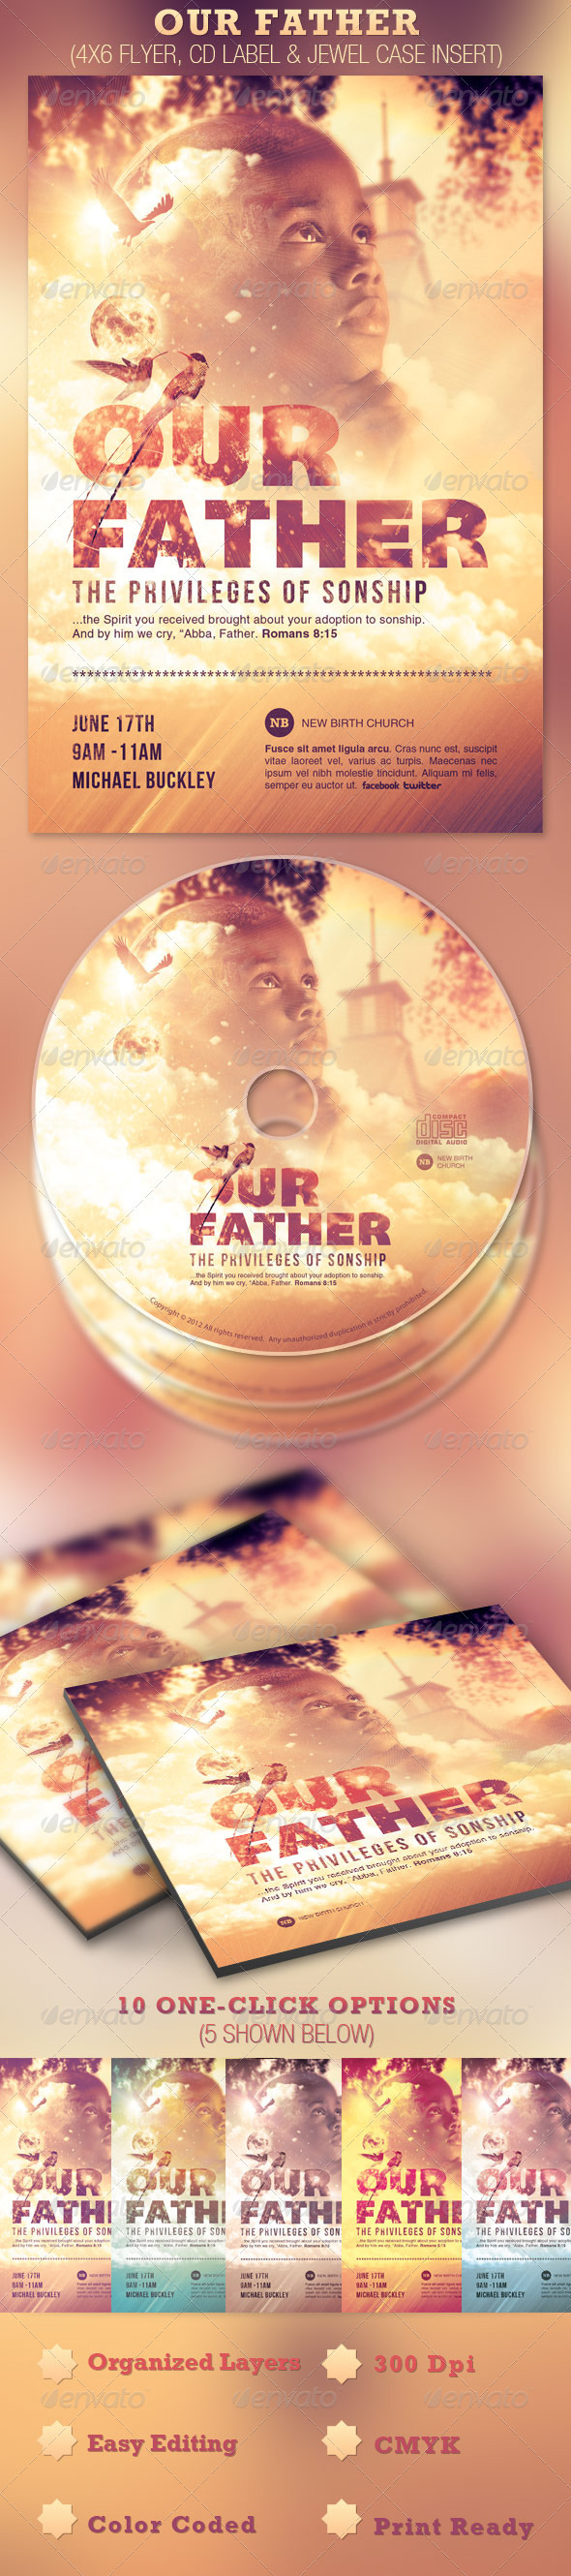 GraphicRiver Our Father Flyer and CD Template 2369180